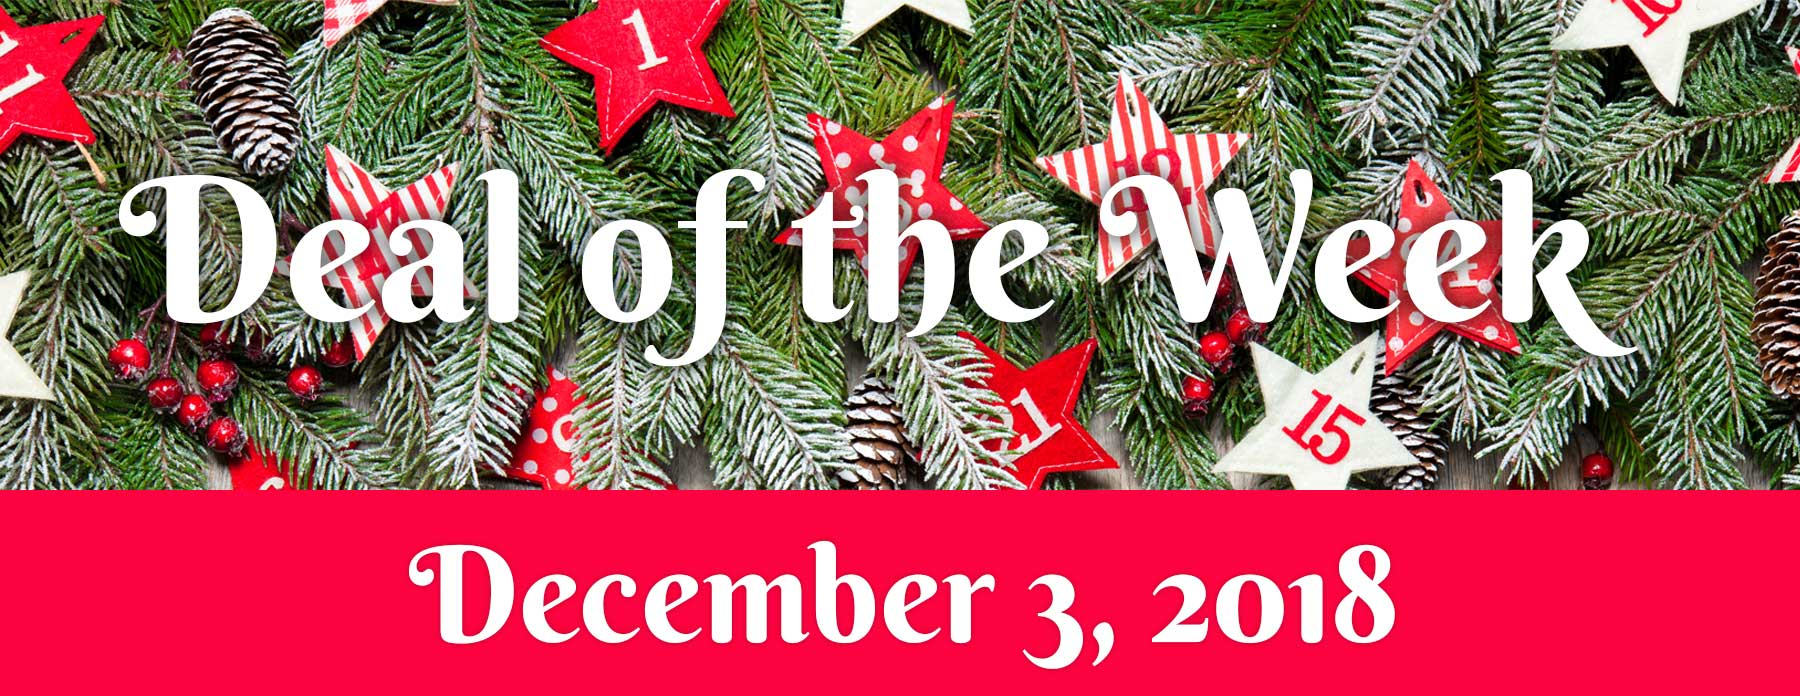 Deal Of The Week – December 3, 2018